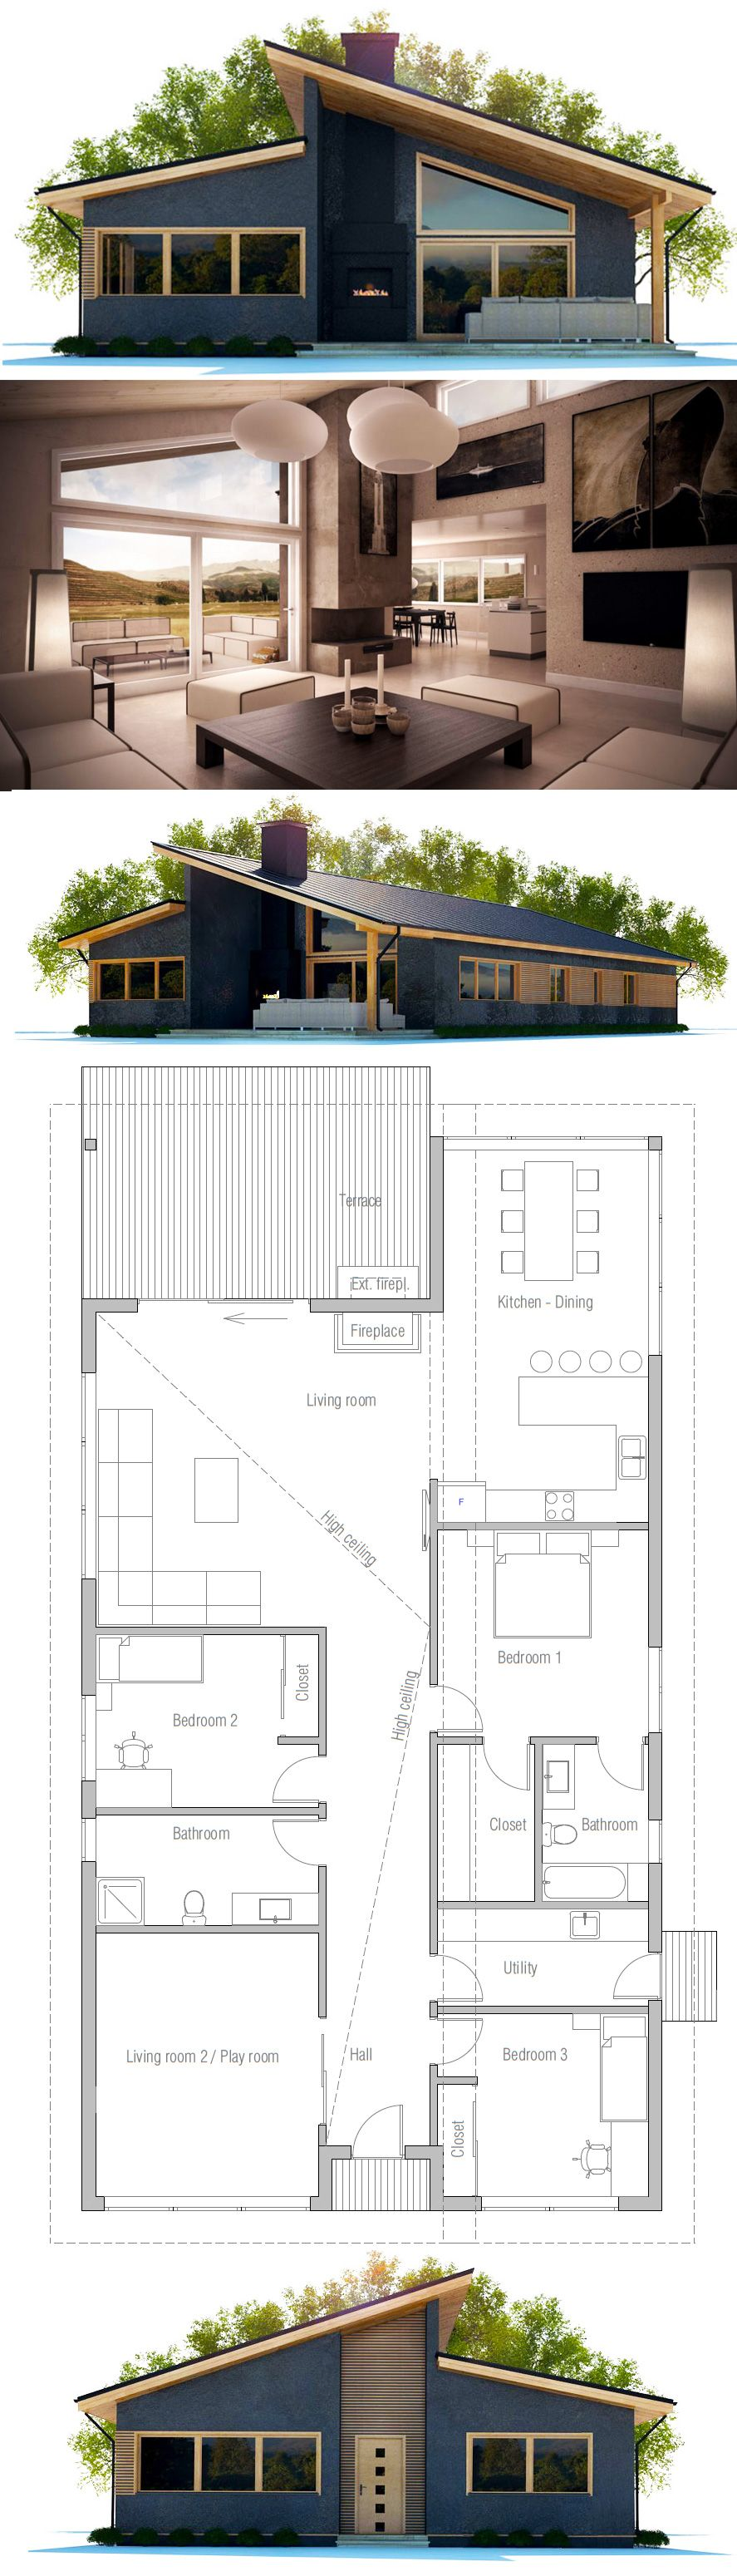 Changing Front Design Of House Part - 31: Container House - Floor Plan: 3 Bdrm Good For Narrow Lot . Change Front  Playroom To Bdrm, Add Bdrm 2 To Living Room, Enclosedu2026